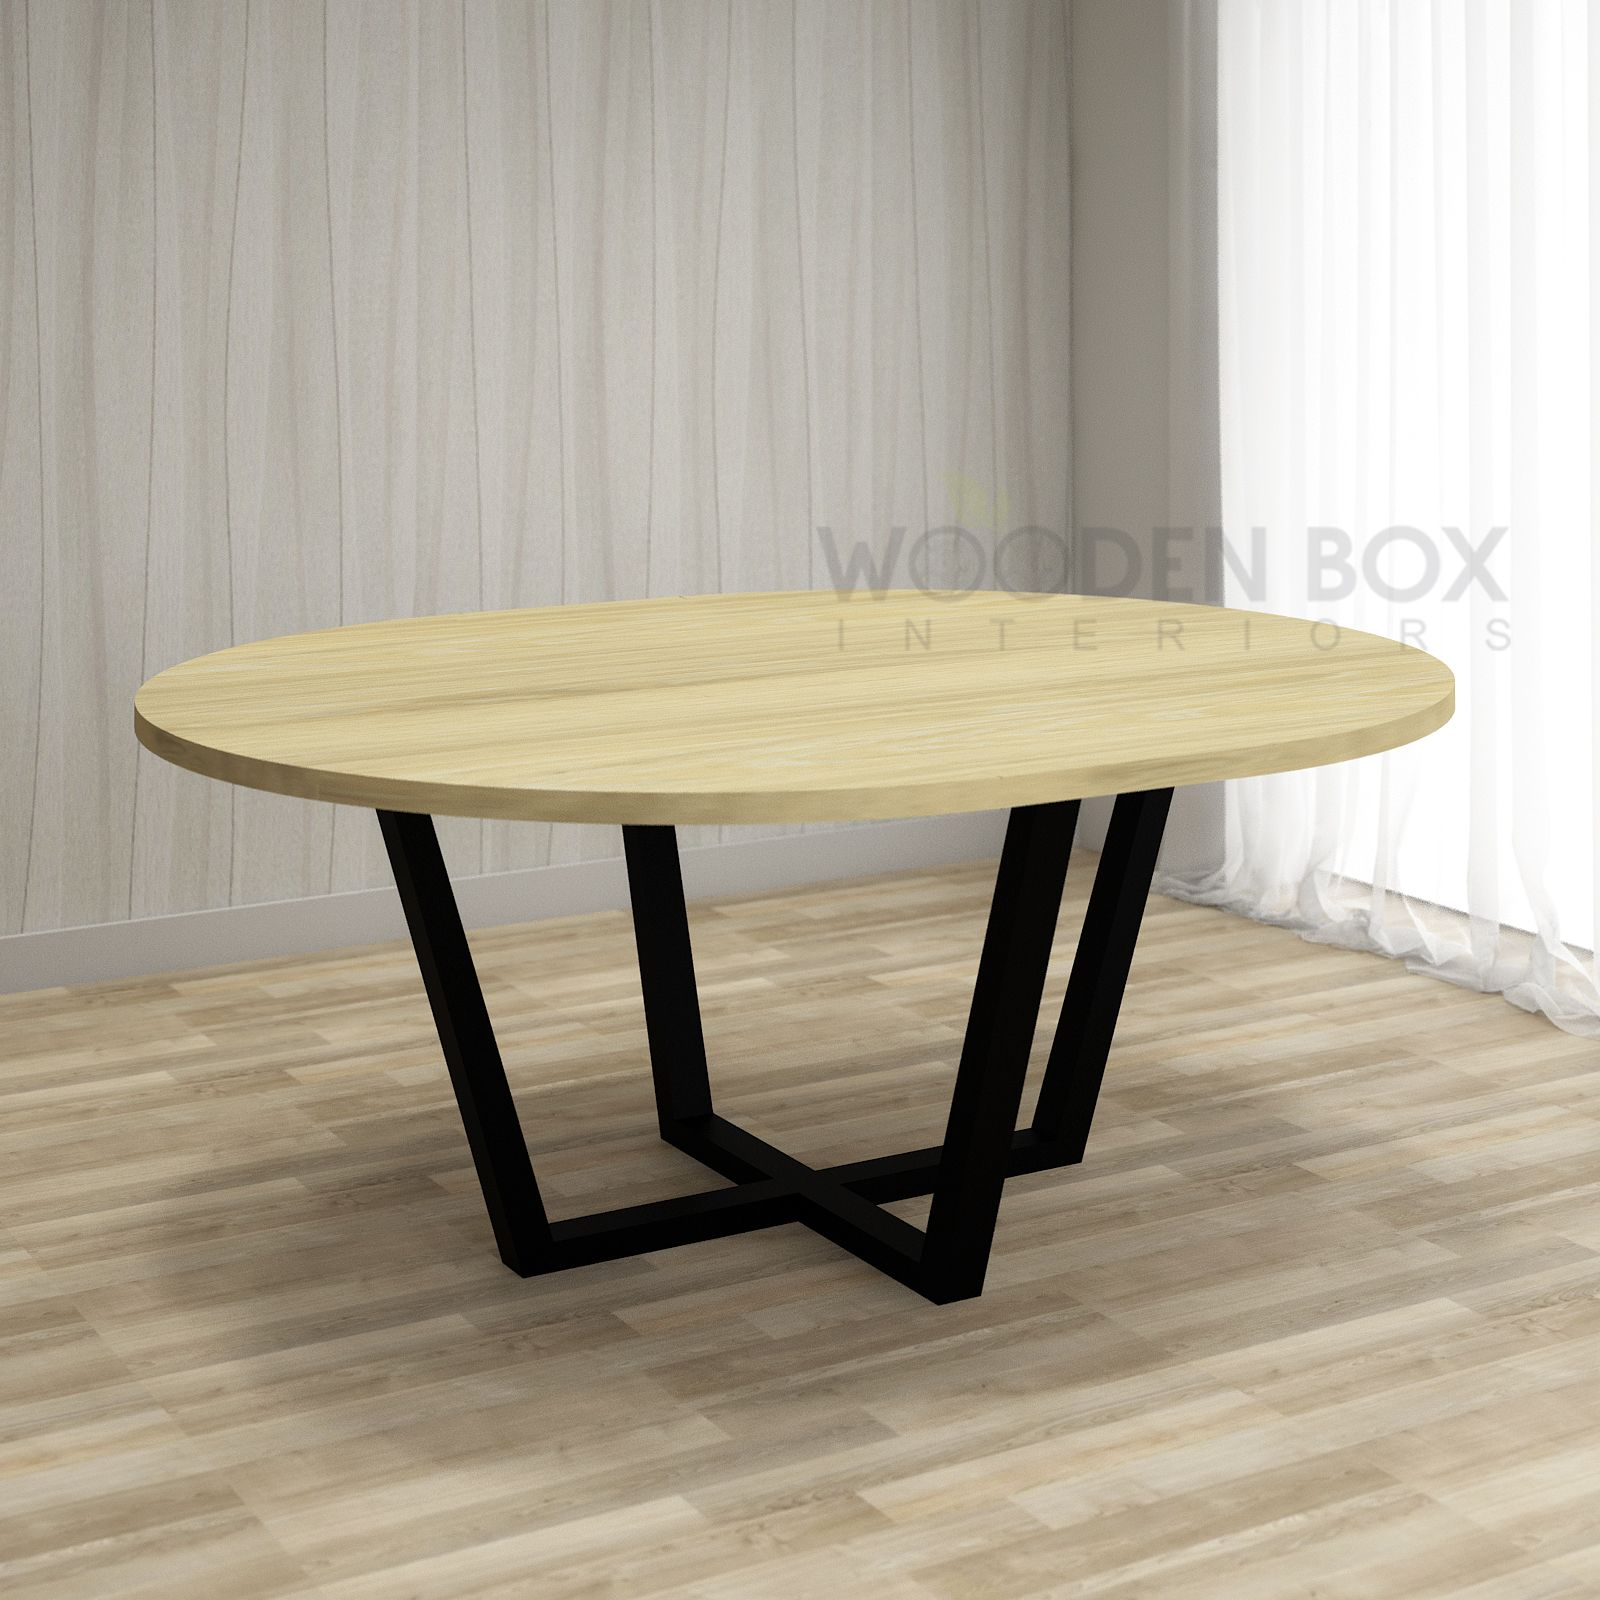 Meeting And Conference Tables In Dubai Furniture Home Furniture Office Furniture [ 1600 x 1600 Pixel ]